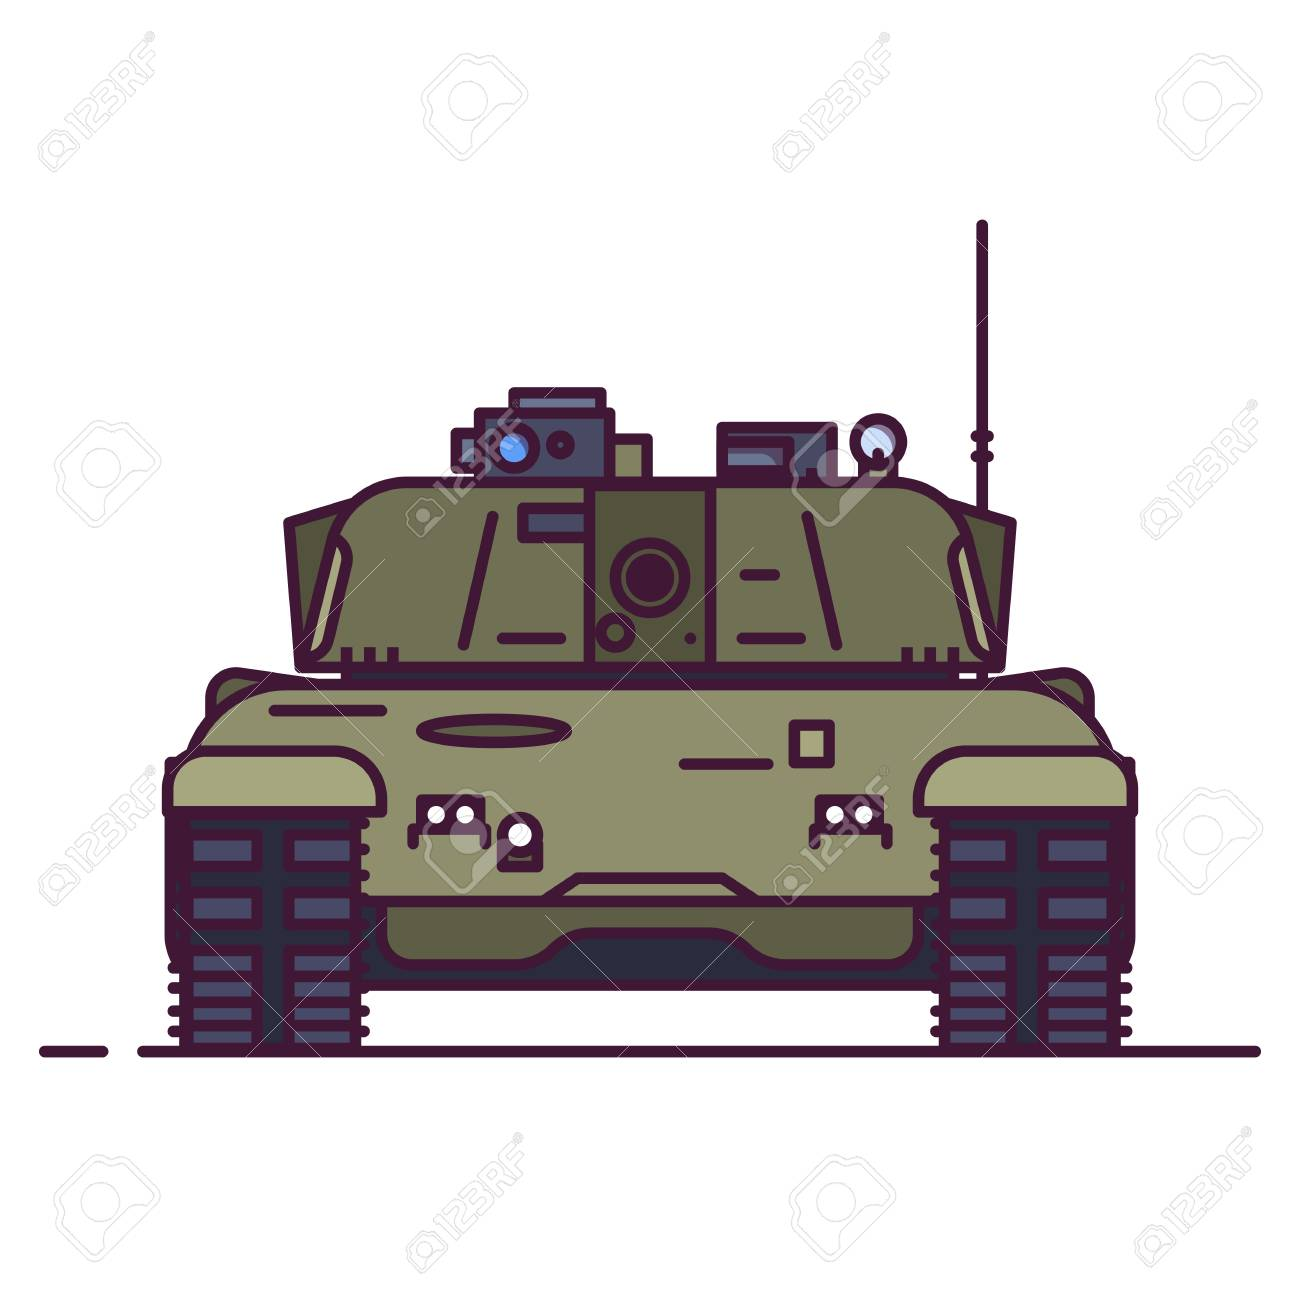 fac63224879df Front view of modern battle tank. Line style vector illustration. Military  vehicle concept.